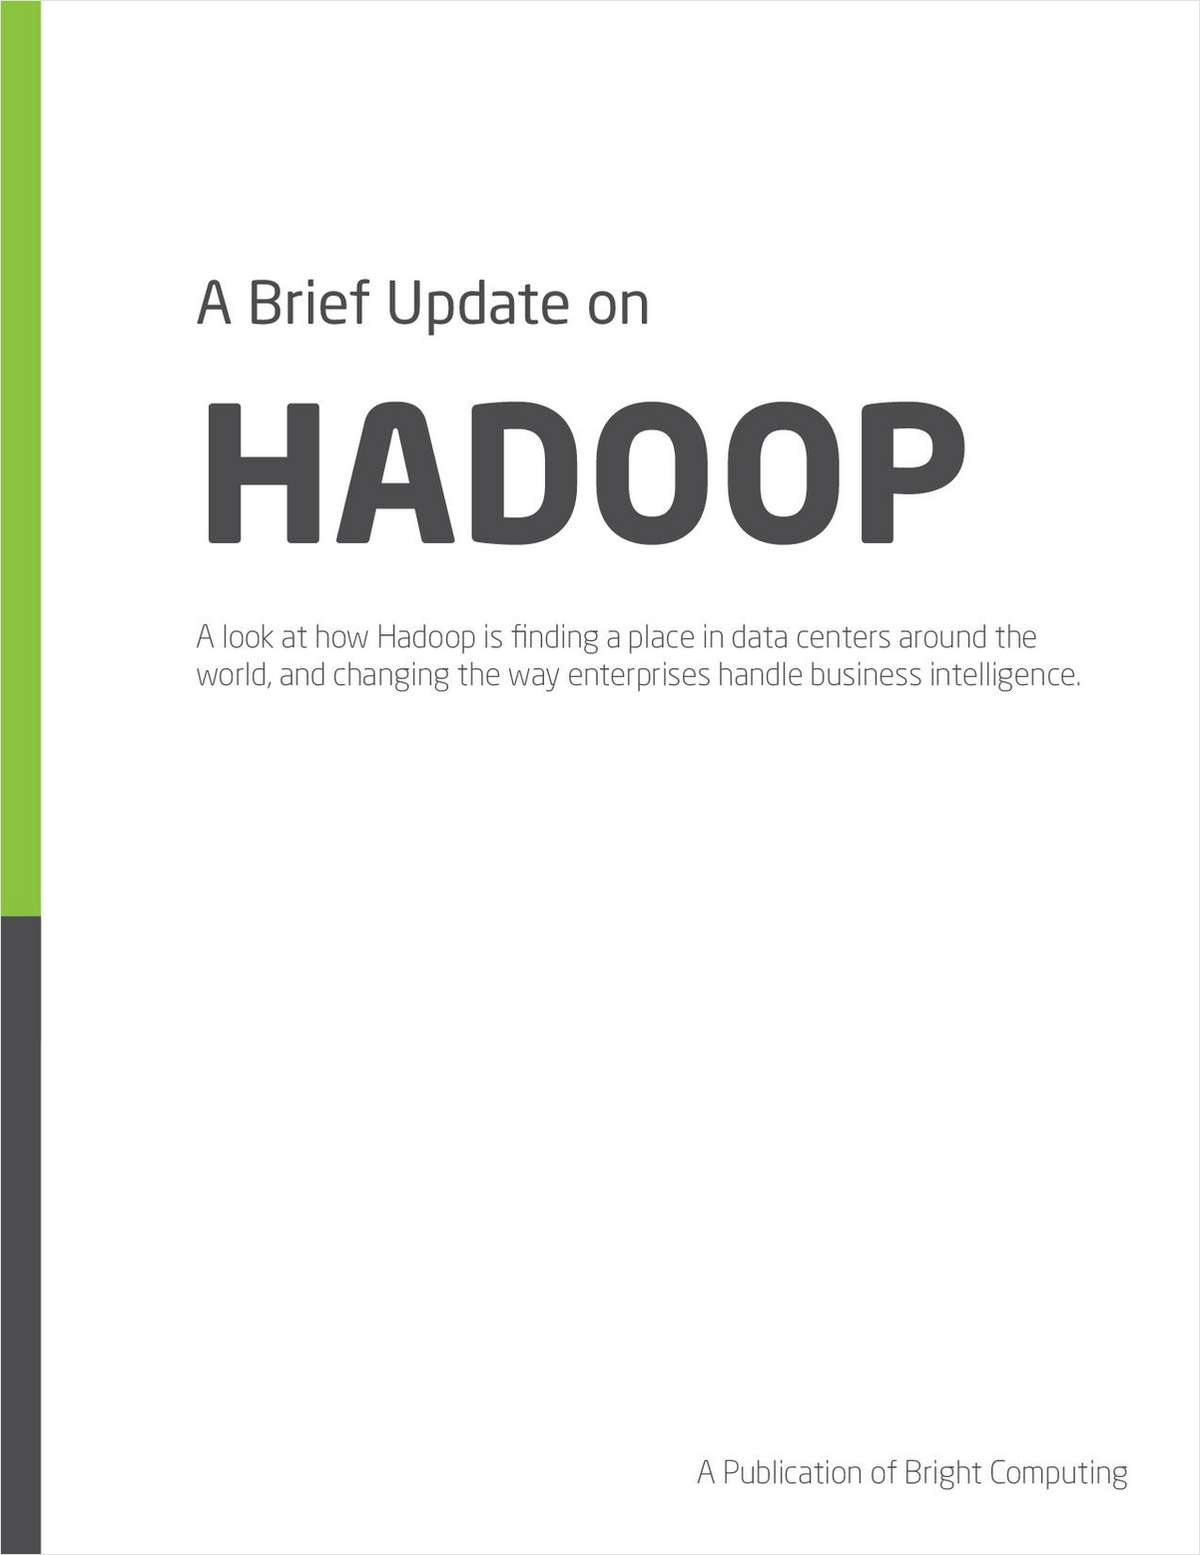 A Brief Update on Hadoop